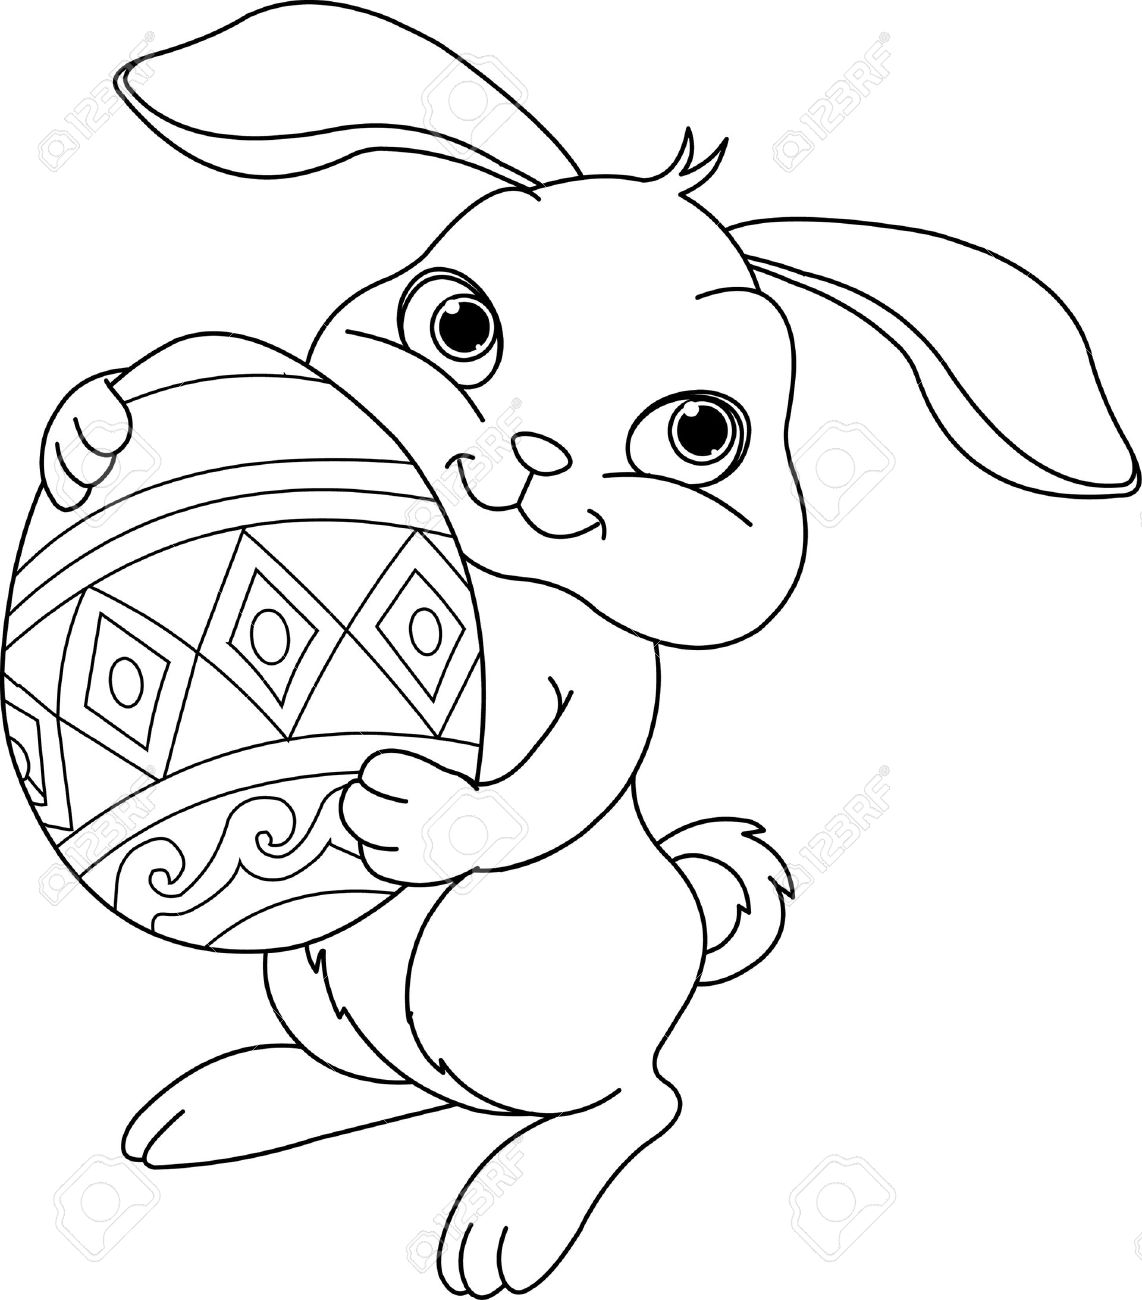 Easter Bunny With Eggs Clipart Black And White Easter bunny carrying egg